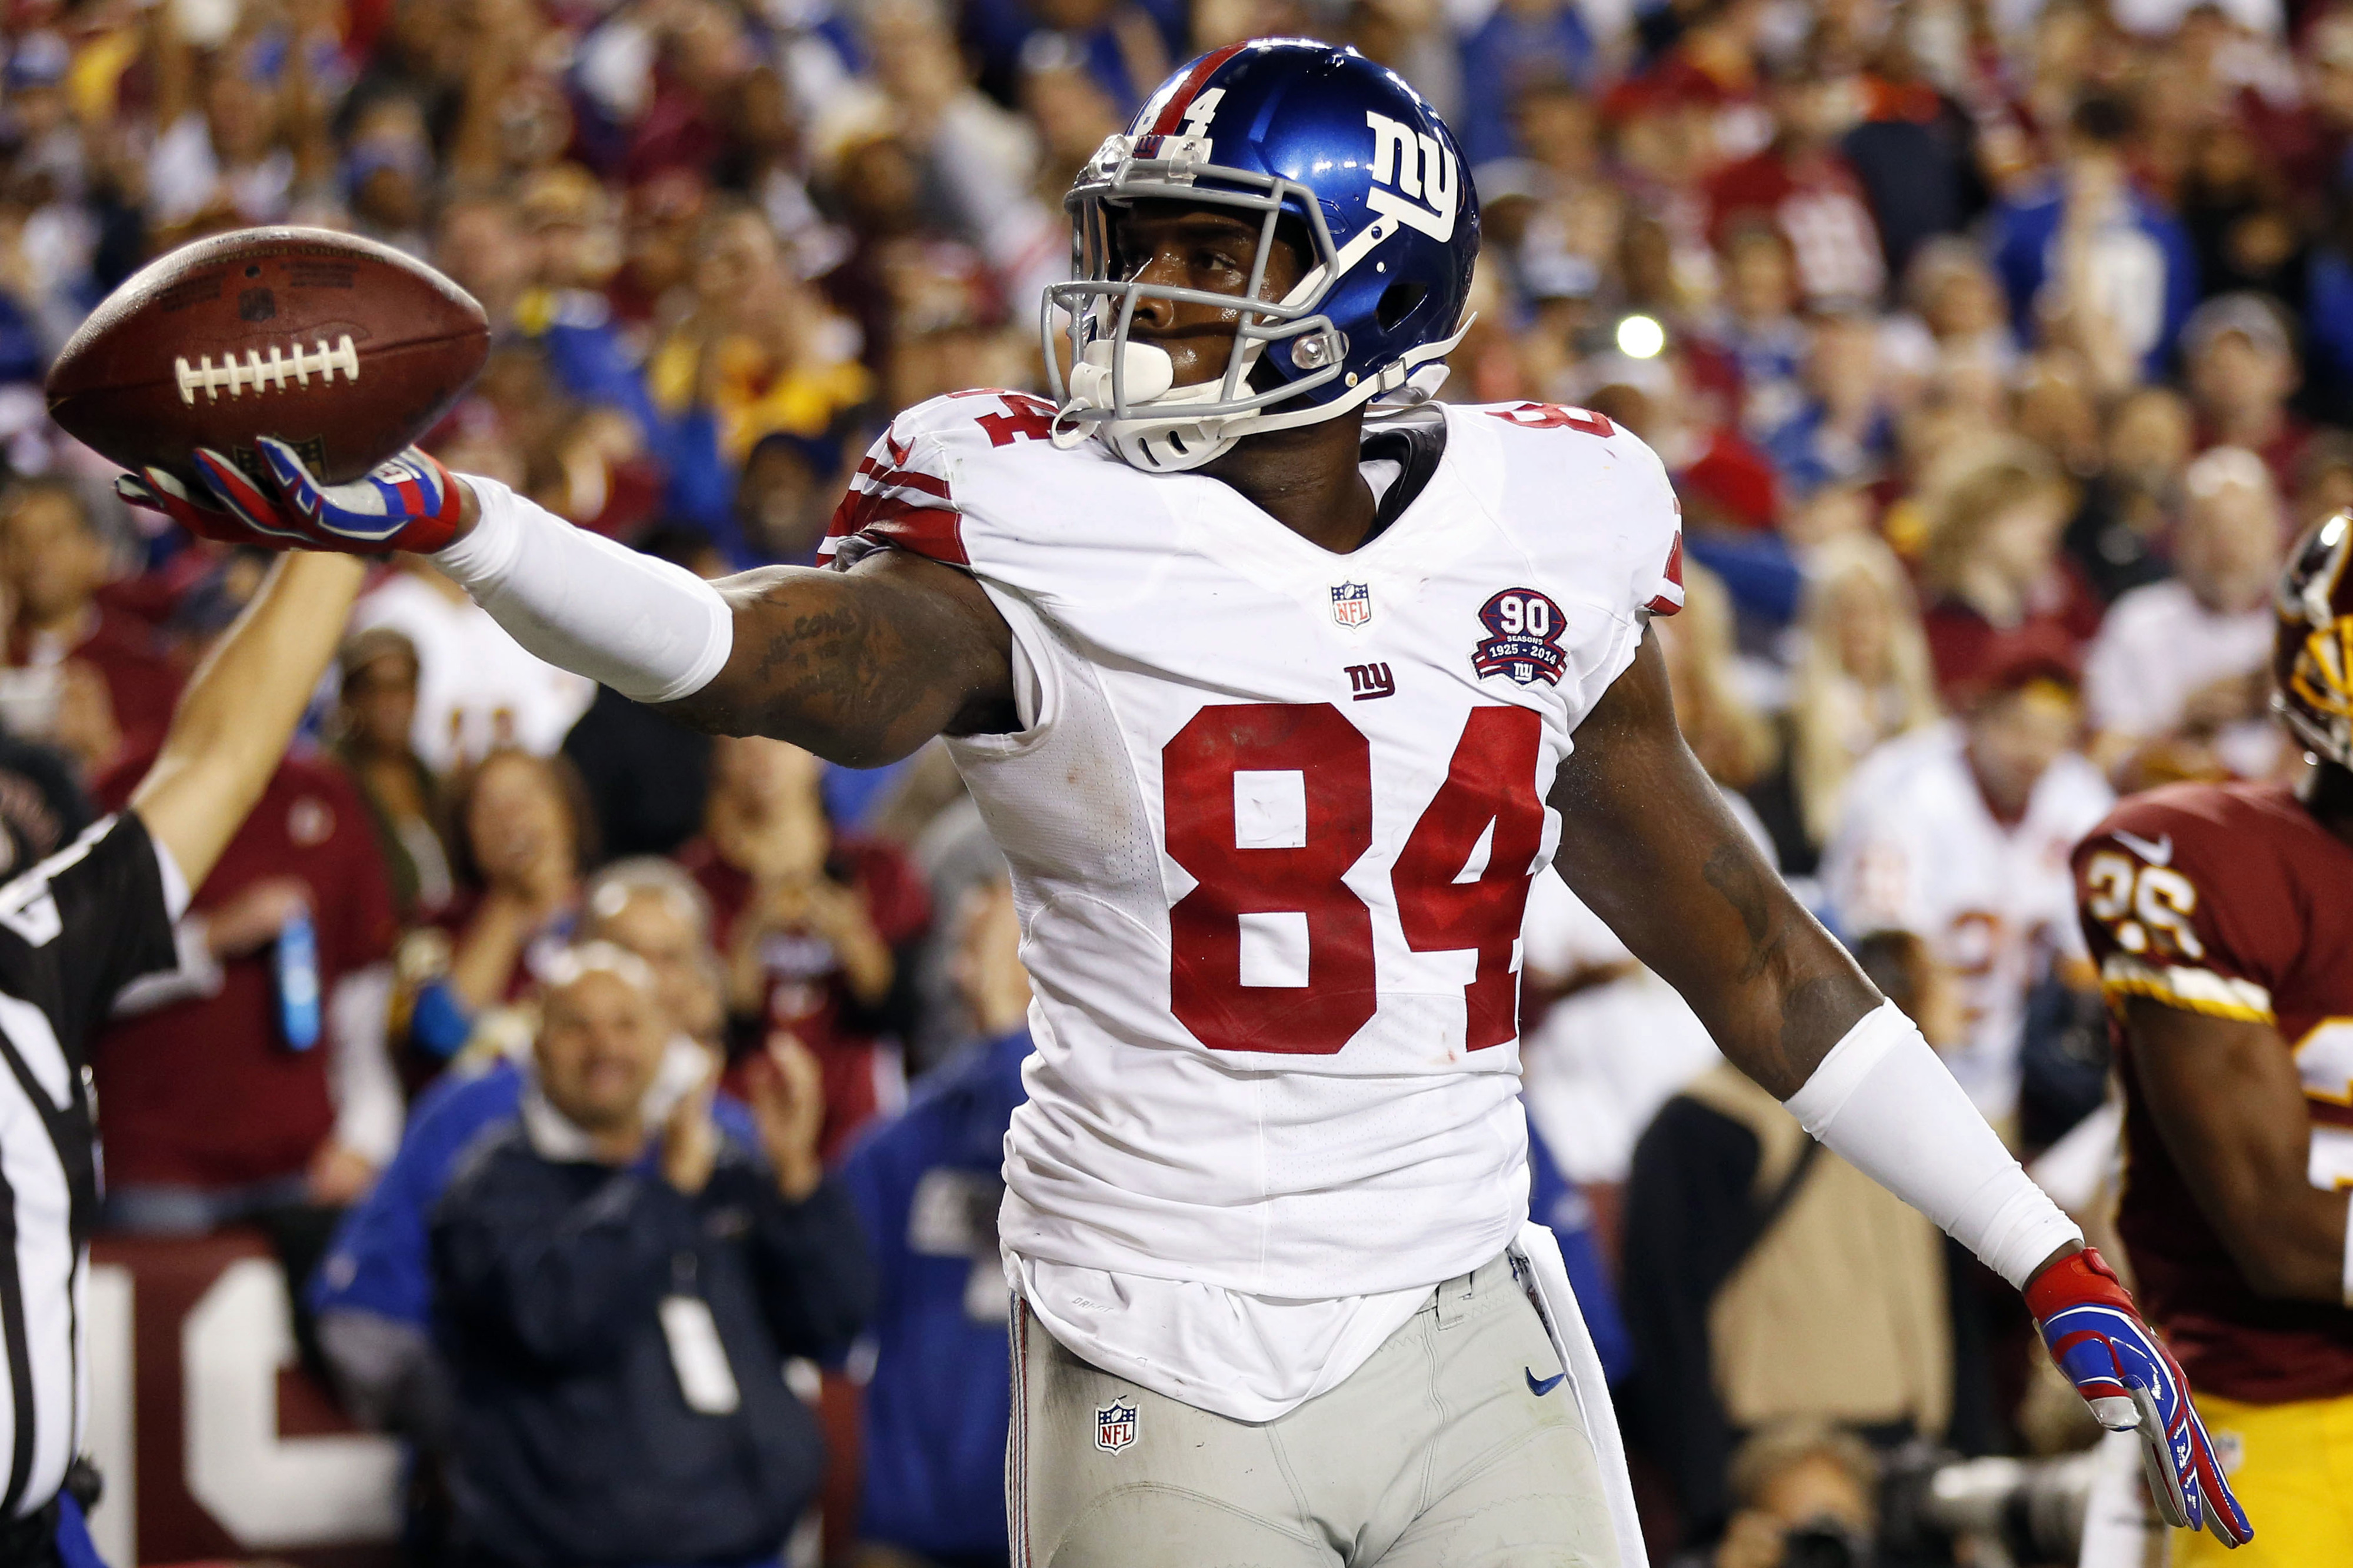 Larry Donnell celebrates one of his three touchdowns